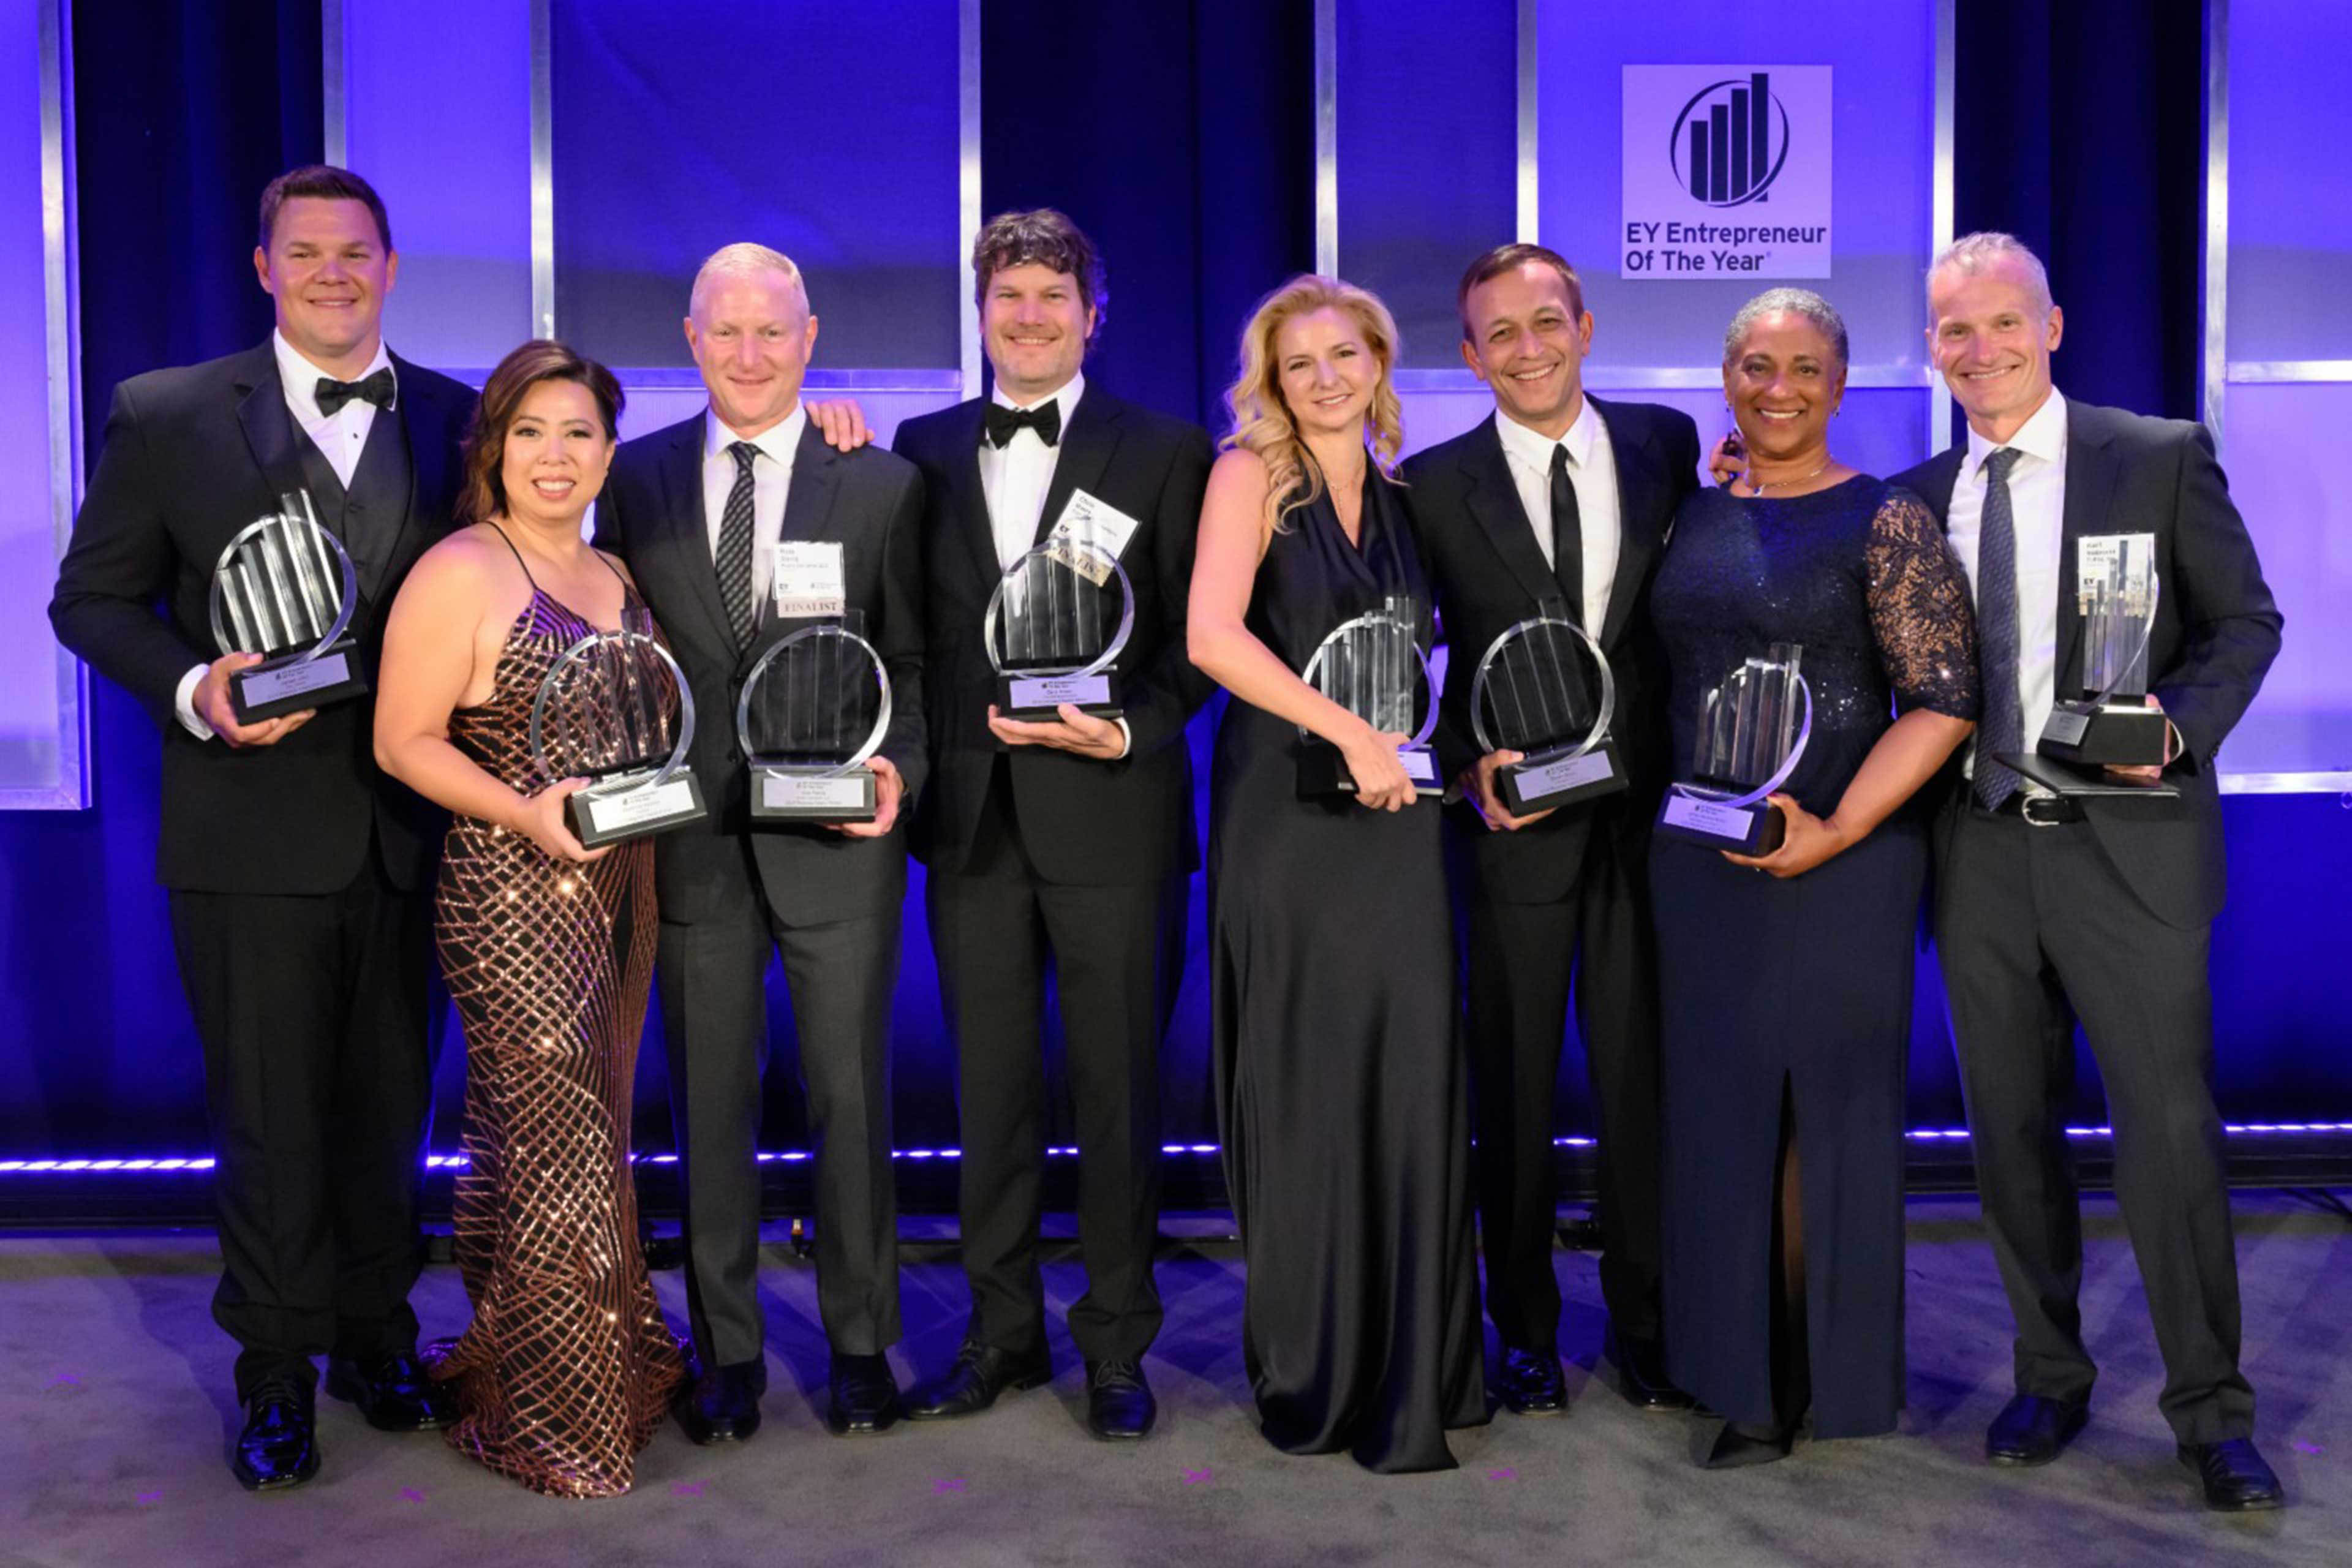 EY Announces Winners of the Entrepreneur Of The Year® 2019 Pacific Northwest Region Award